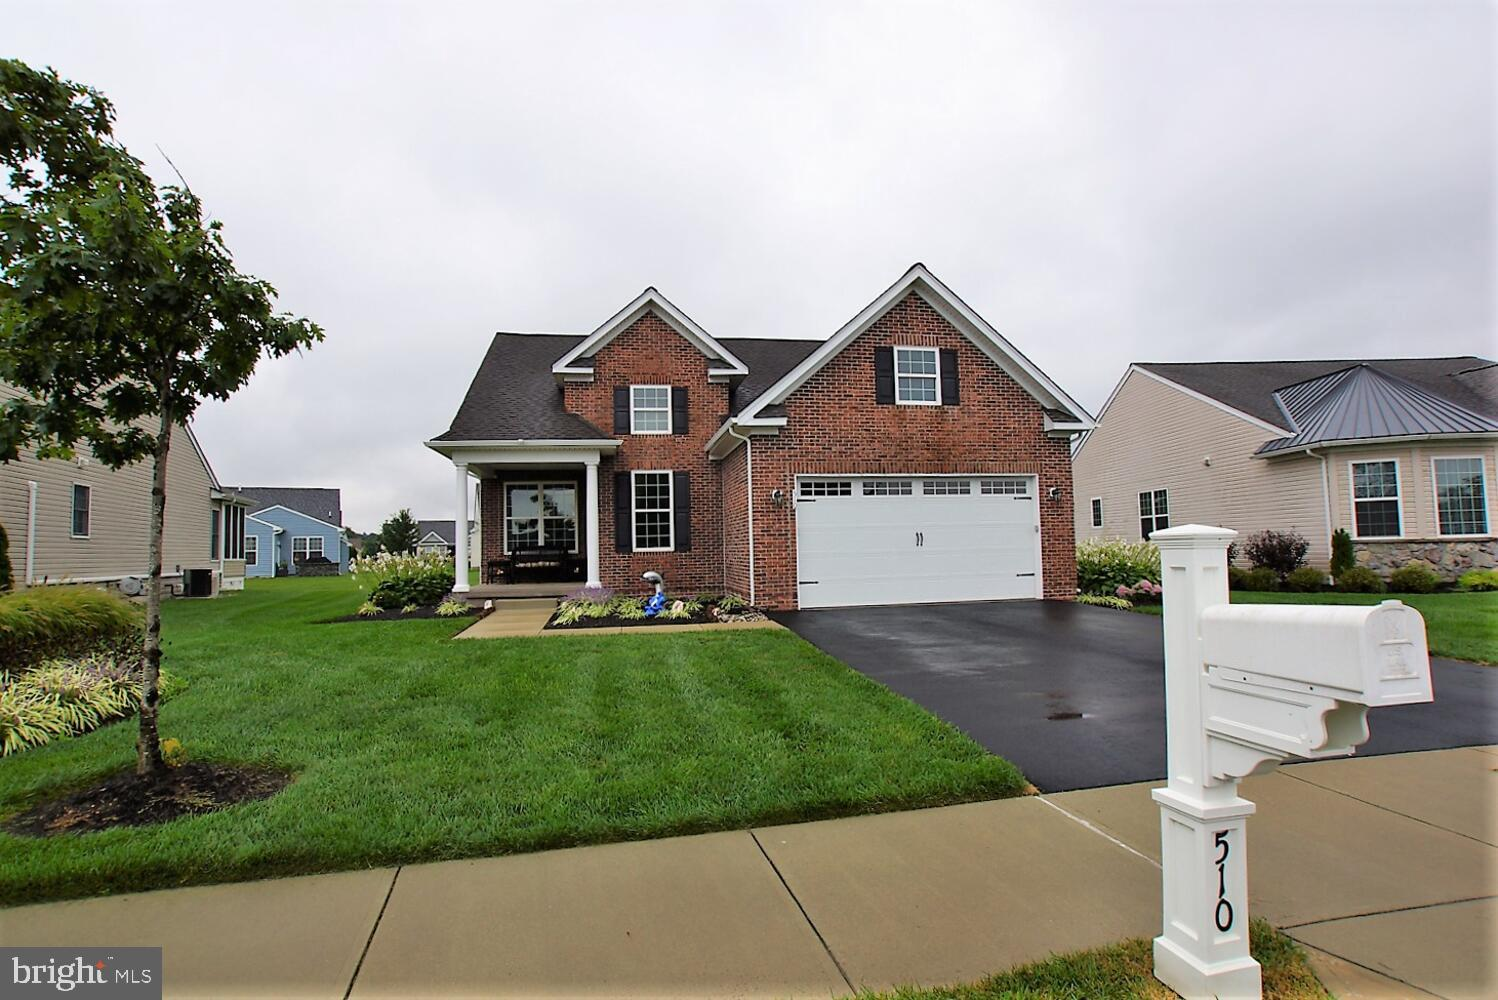 Celebrate the rare opportunity to own the first model home built in this highly regarded 55 plus community of Champions Club.  This model home has all the options, exquisite woodwork and details a high-end model home always features.  Beginning with its unique brick façade, you'll enjoy multiple outdoor living spaces beginning with the stately pillared covered front porch and including the rear screened porch and maintenance free deck.  The elegant entry boasts a transom window above the leaded glass door and side windows.  Hardwood flooring covers the first floor living spaces with extra width floor and crown moldings and detailed wainscoting providing additional embellishment.  Alluring ambiance is provided by the double-sided glass fireplace that links the living room and dining room areas.  Your gourmet kitchen has quartz  countertops, stainless sink, breakfast bar, tile backsplash, expansive wood cabinetry with periodic glass cupboard doors, under cabinet lighting and newer appliances.  Adjourn to the family room that includes walls of windows and a double sliding glass door with muntins and transom window leading to the screened porch.  The master is on the first floor and the second floor bathroom enjoys its own personal bathroom.  Three bedrooms and three bathrooms….another rare find in this established community.  Enjoy membership in the clubhouse located conveniently right across the street with Olympic size outdoor pool, workout room, pool hall, and multiple elegant meeting and party areas available for your use.  You'll have a cost-effective ownership experience as this is a GREEN home that includes an $8,000 owned water softening system, conditioned crawl space for storage, insulated garage door, SMART thermostat facilitates remote programming, furnace and HVAC less than three years old and features eco-friendly refrigerant with a high SEER rating and more.  It's your dream home come true!  Visit quickly…unique residences do not last long!